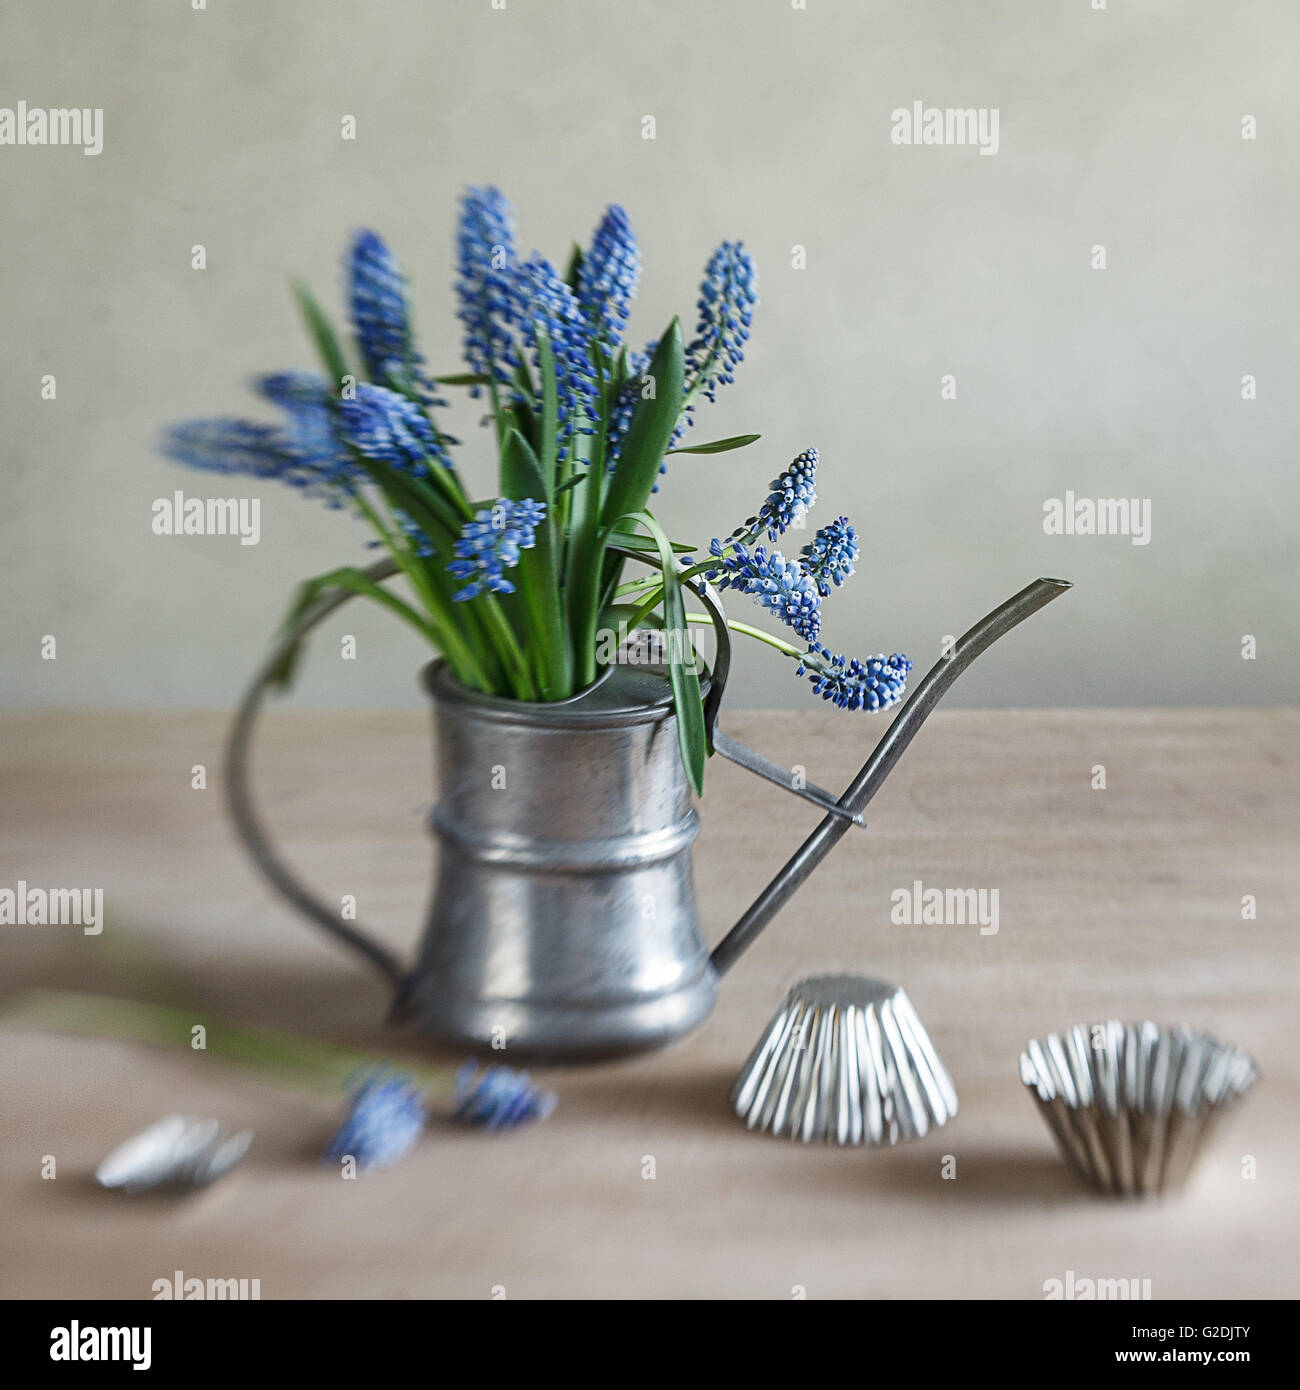 Still life with grape hyacinths arranged in an antique watering can with old moulds on a rustic wooden kitchen table - Stock Image